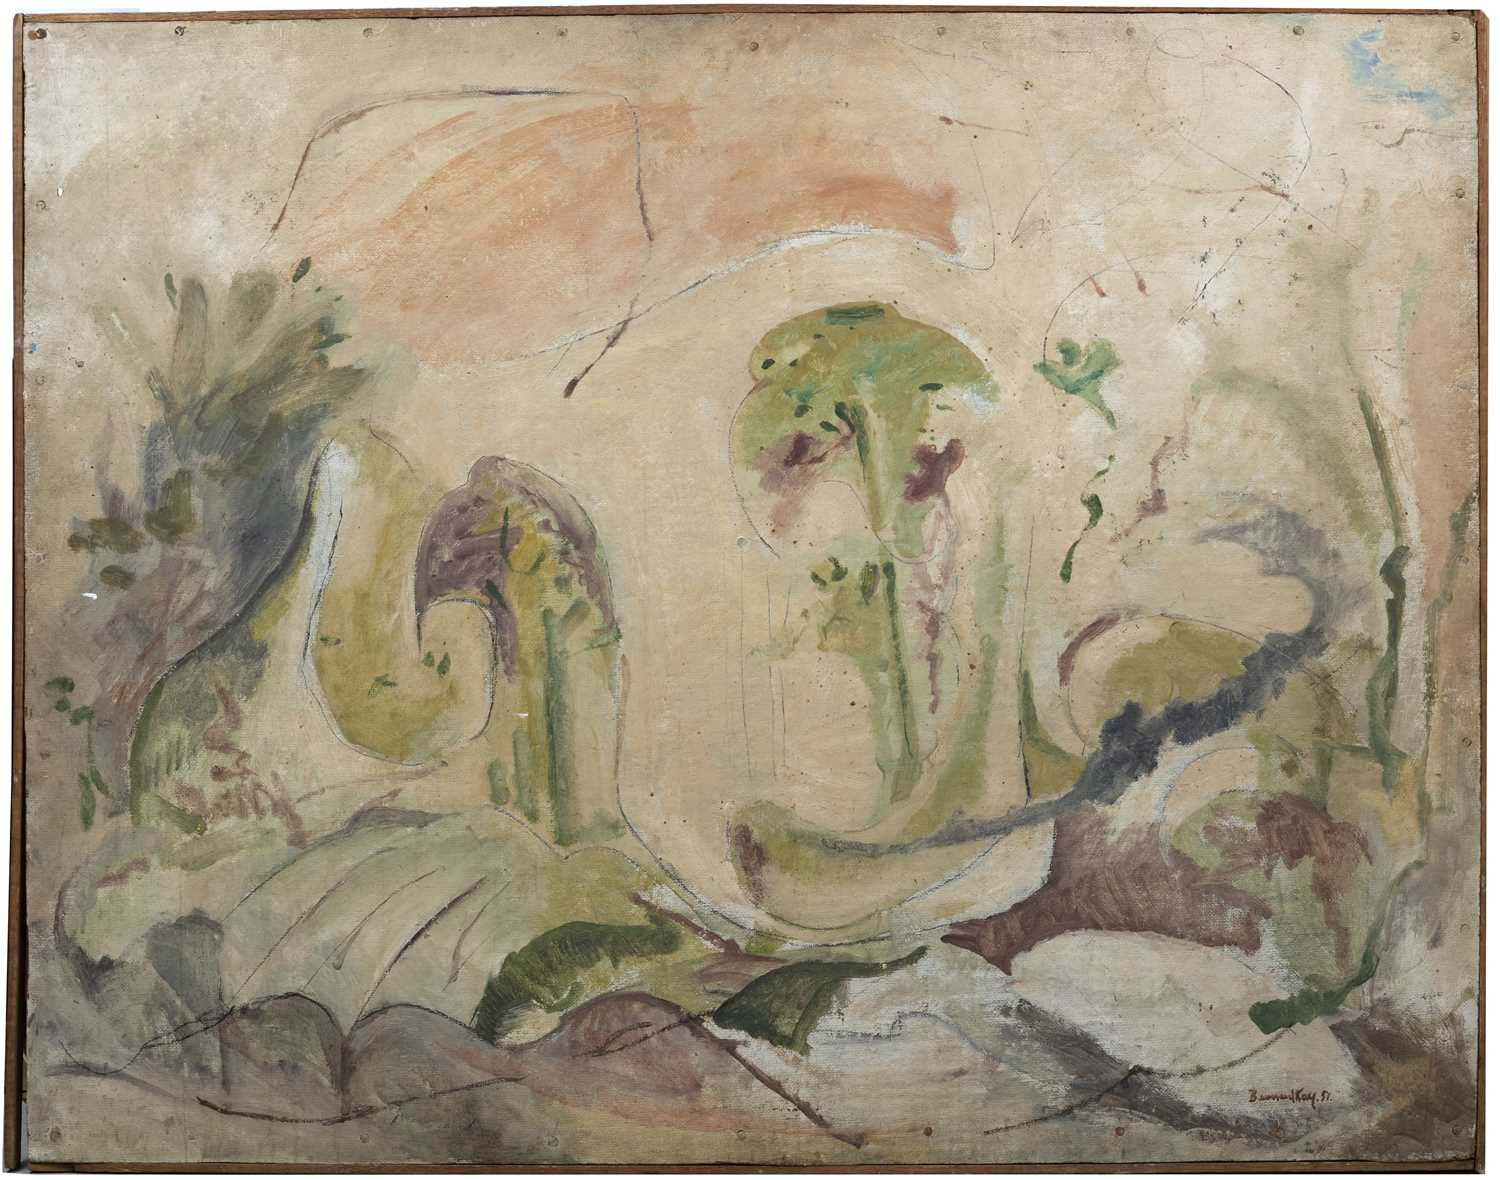 Bernard Kay (1927-2021) Untitled landscape, 1951 signed and dated (lower right) oil on board 102 x - Image 3 of 4